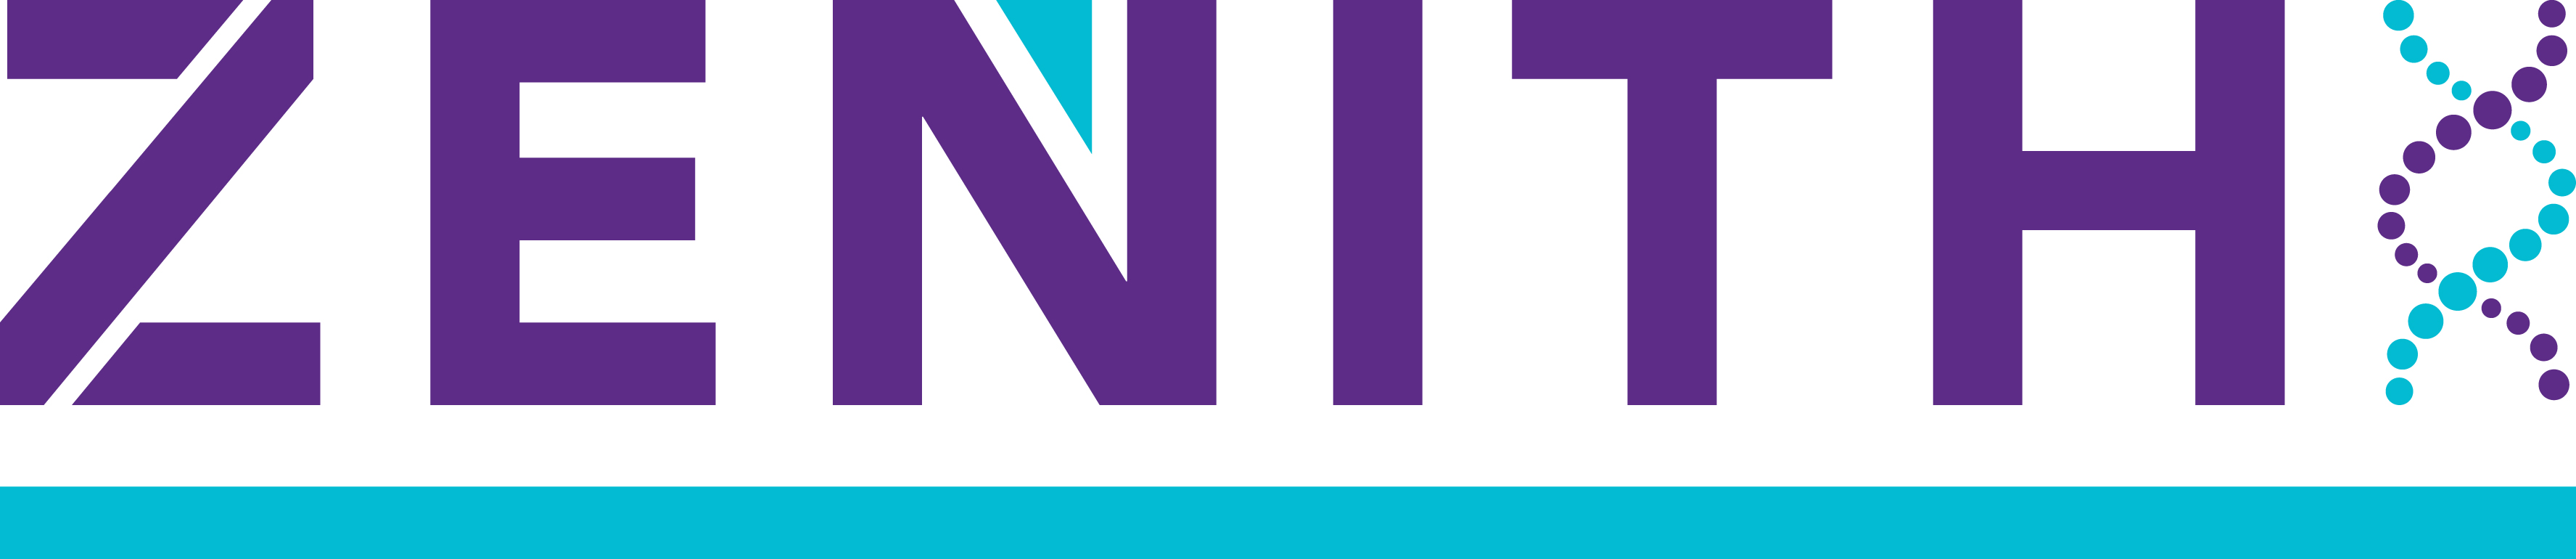 Zenith Announces Extension of its Filing Calendar Based on Continuous Disclosure Exemption